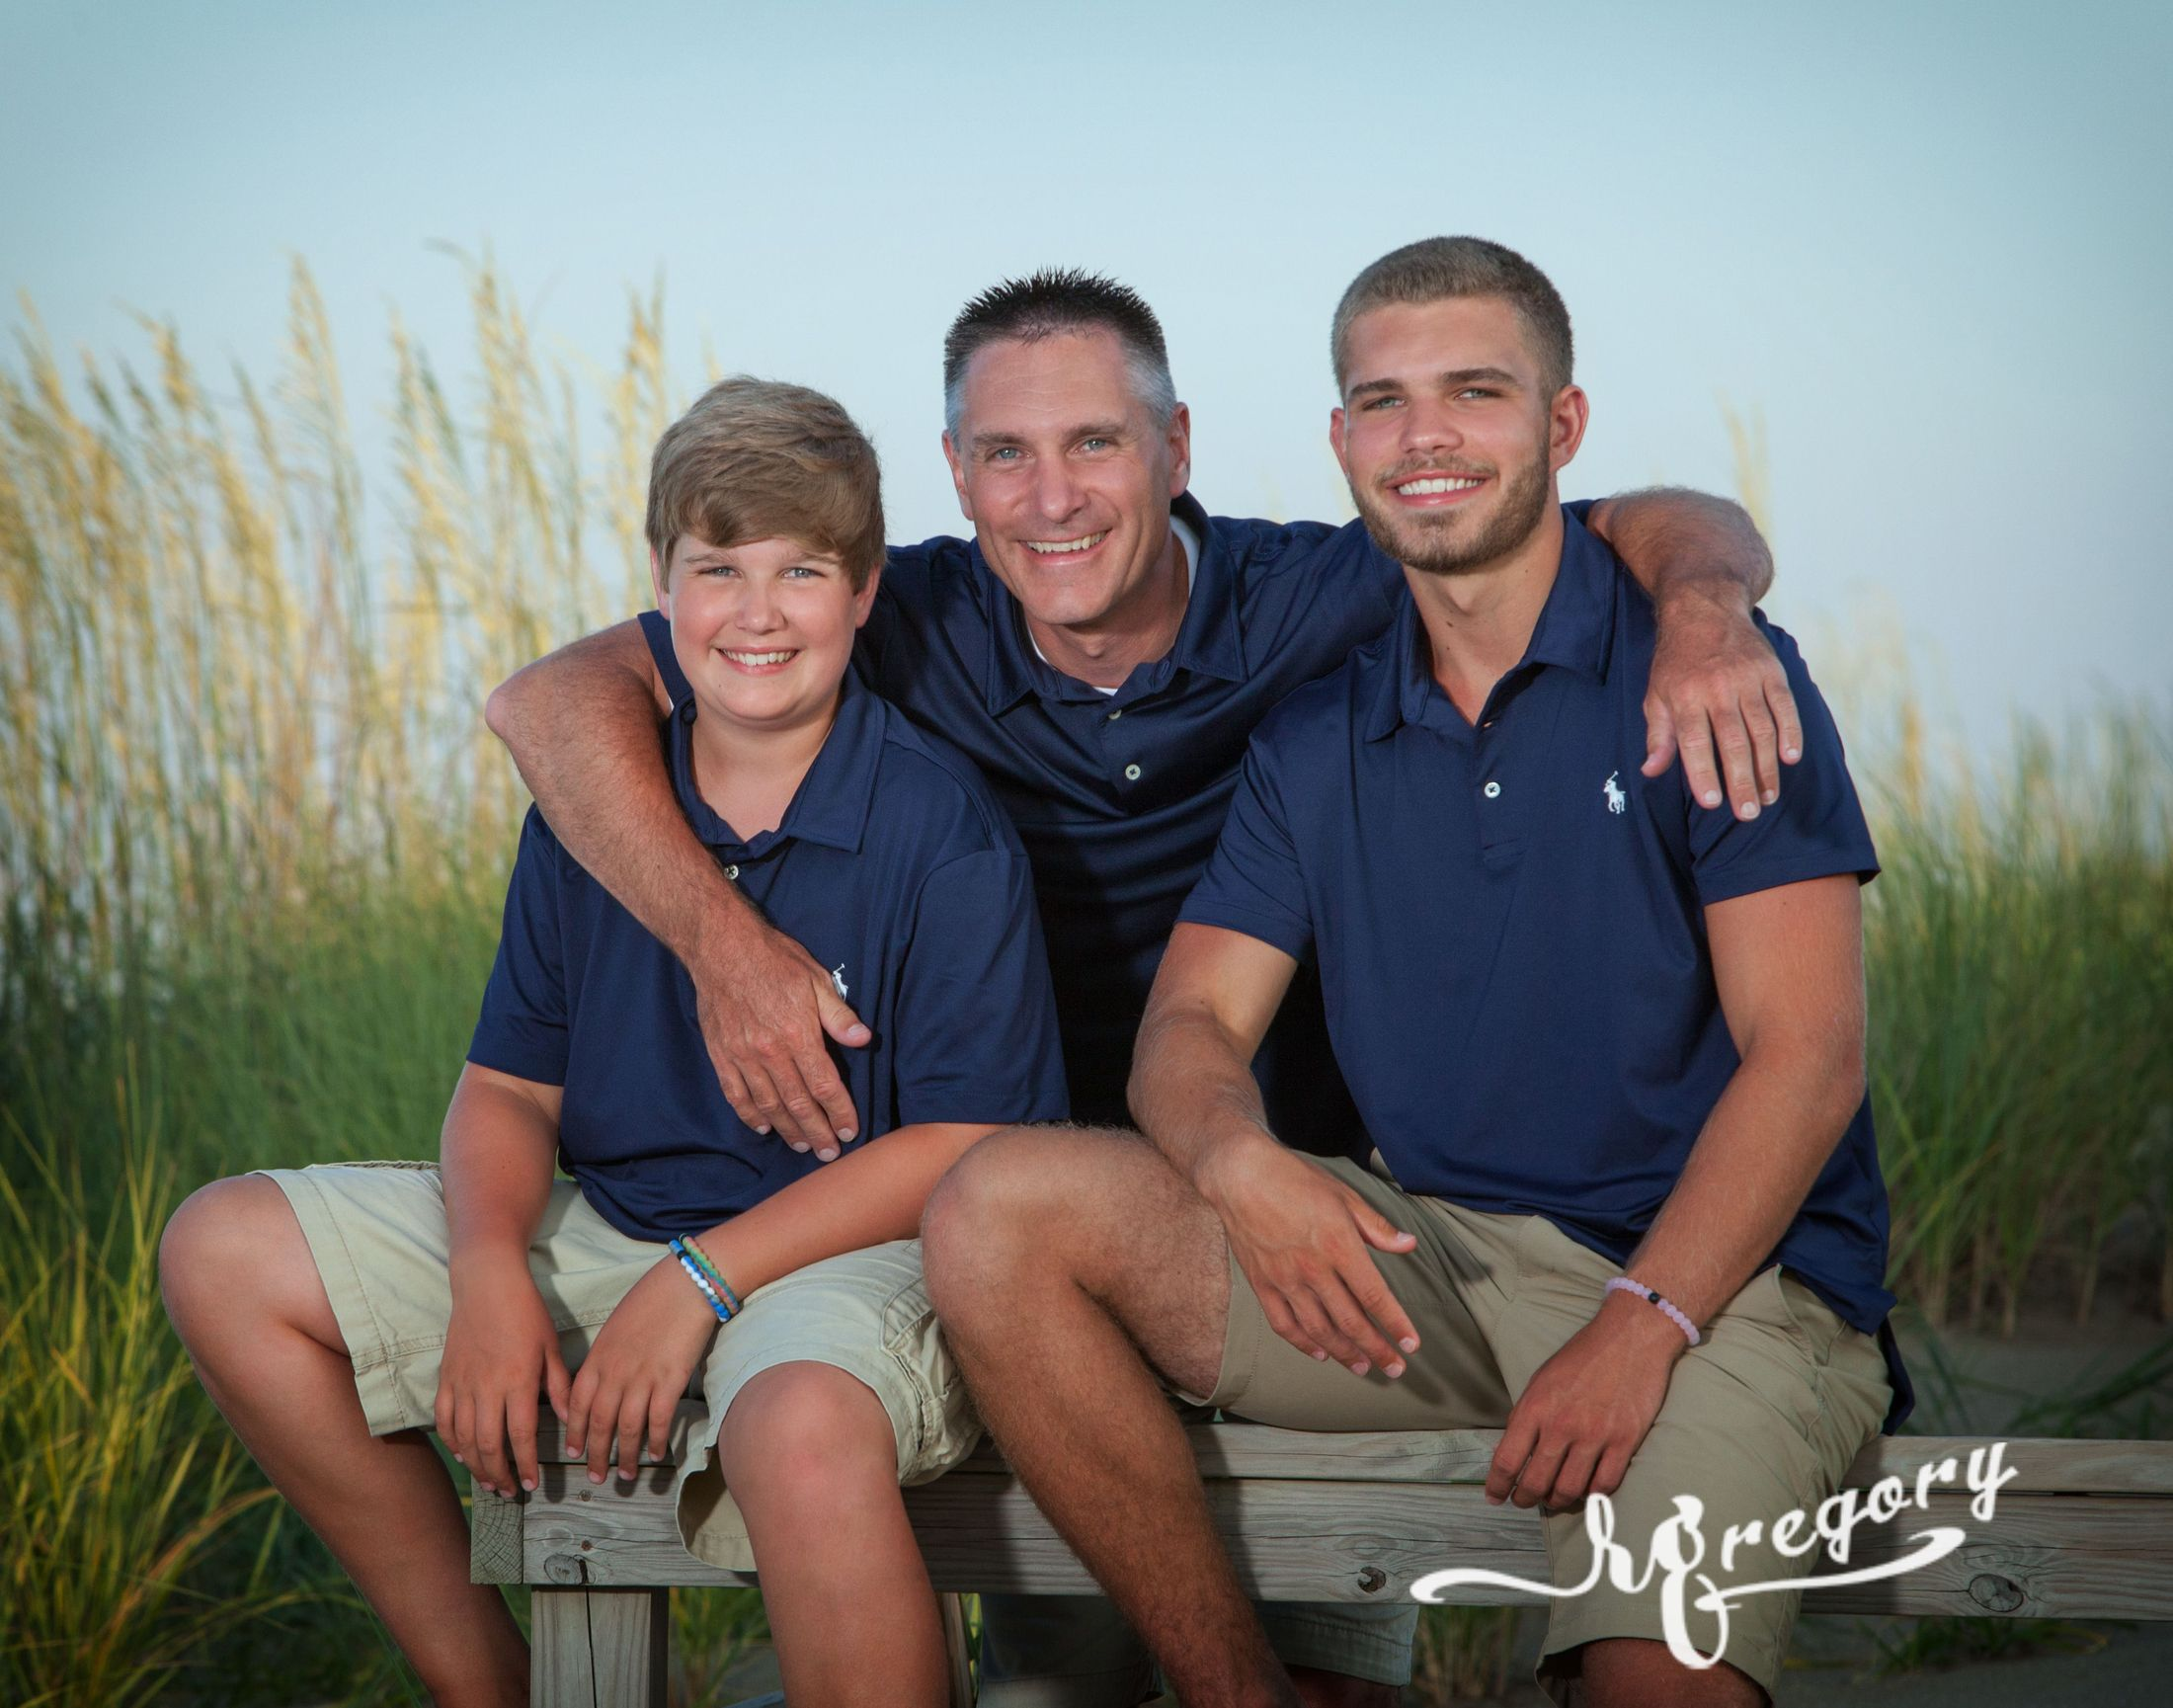 Phillippi father child son beach grass vacation photographer